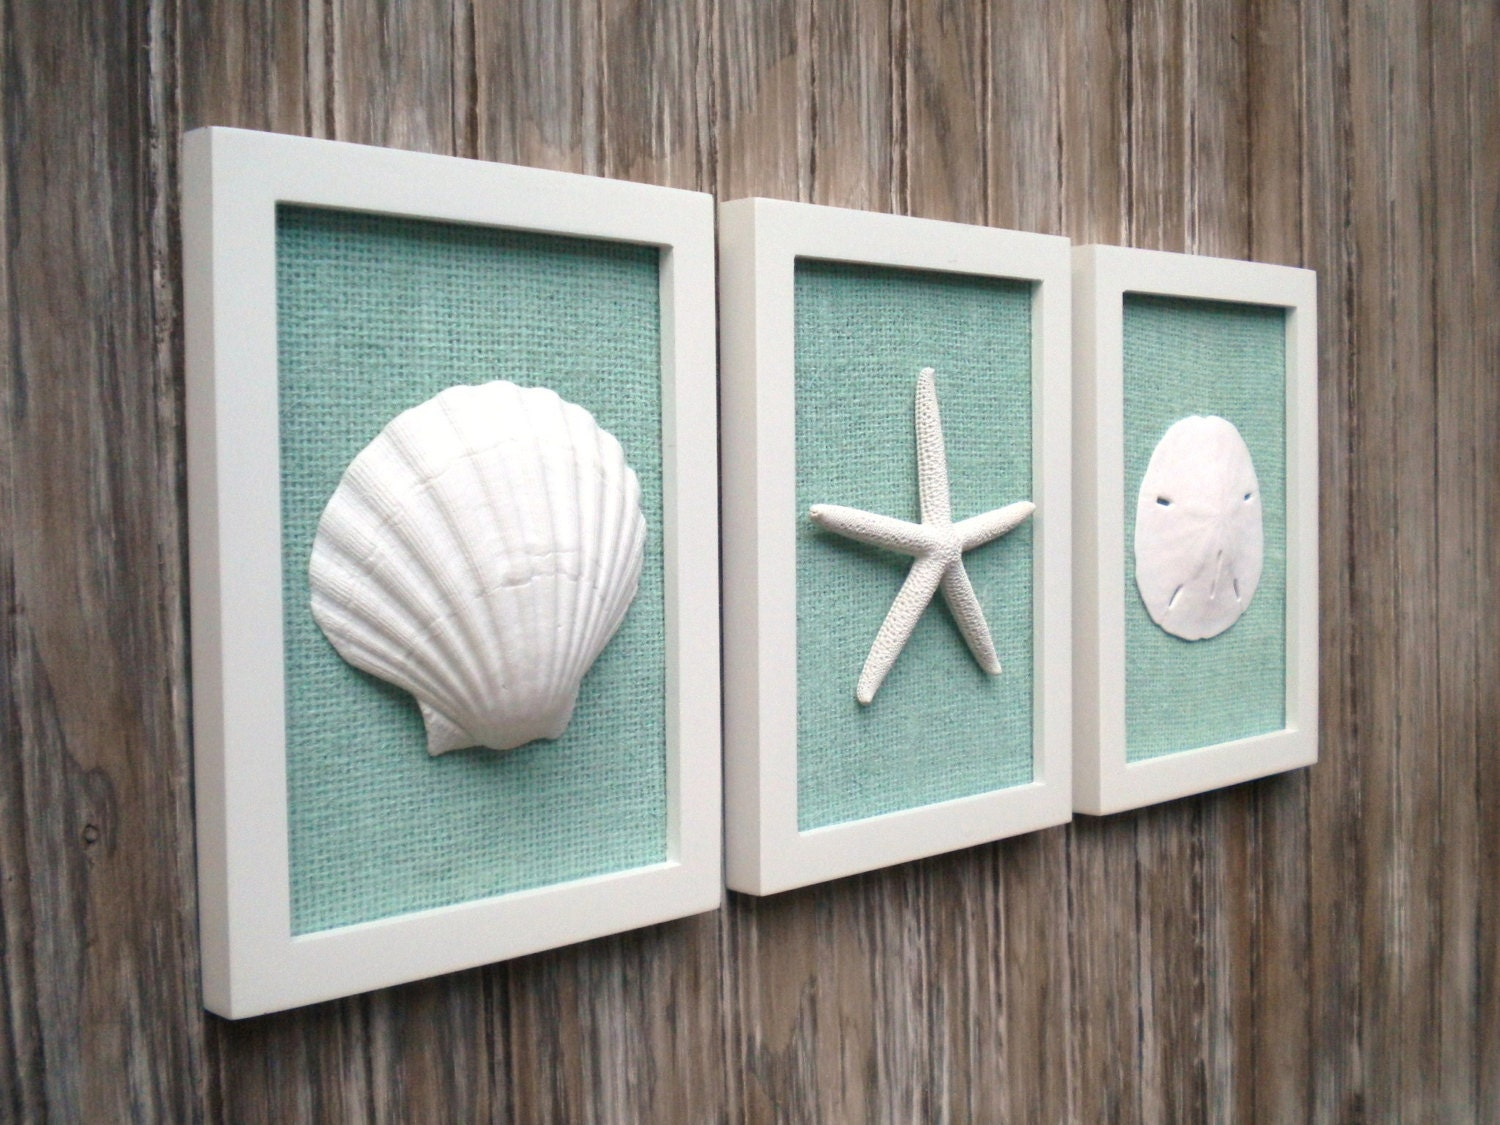 Bathroom wall art sea - Sea Themed Wall Art Cottage Chic Set Of Beach Wall Art Sea Shells Home Decor Beach